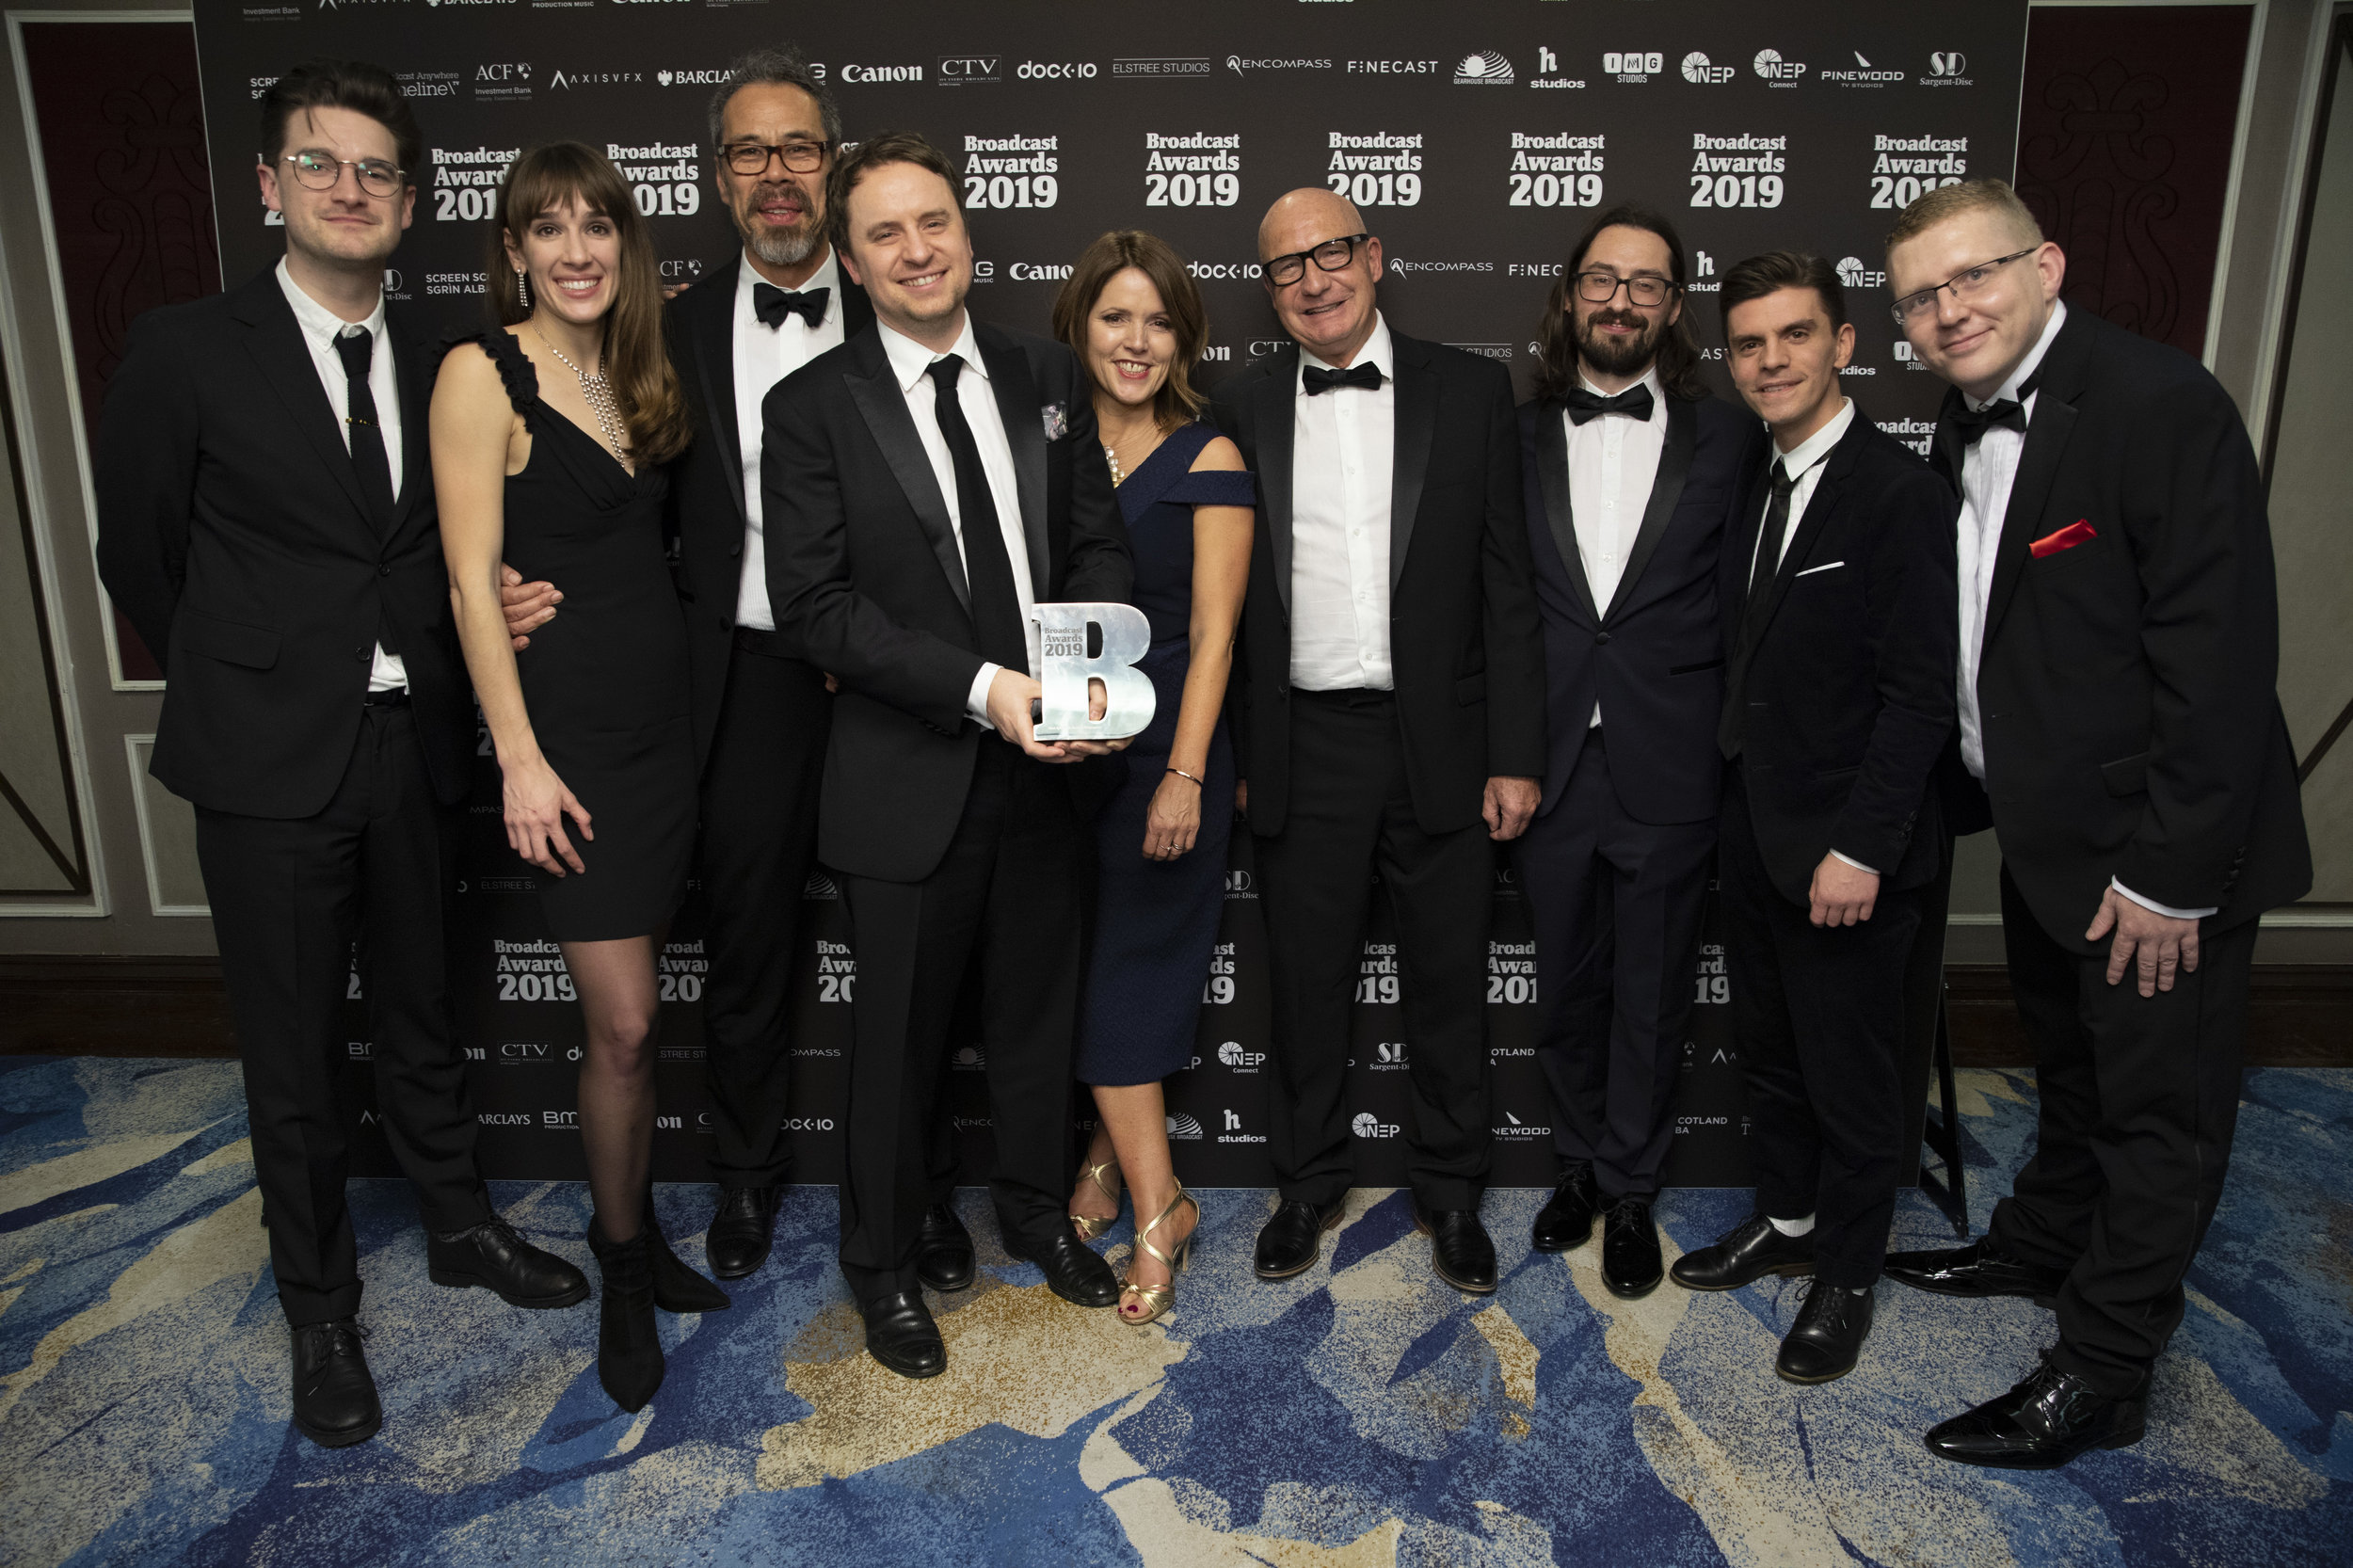 Storyvault Films Team Photo, Broadcast Awards 2019